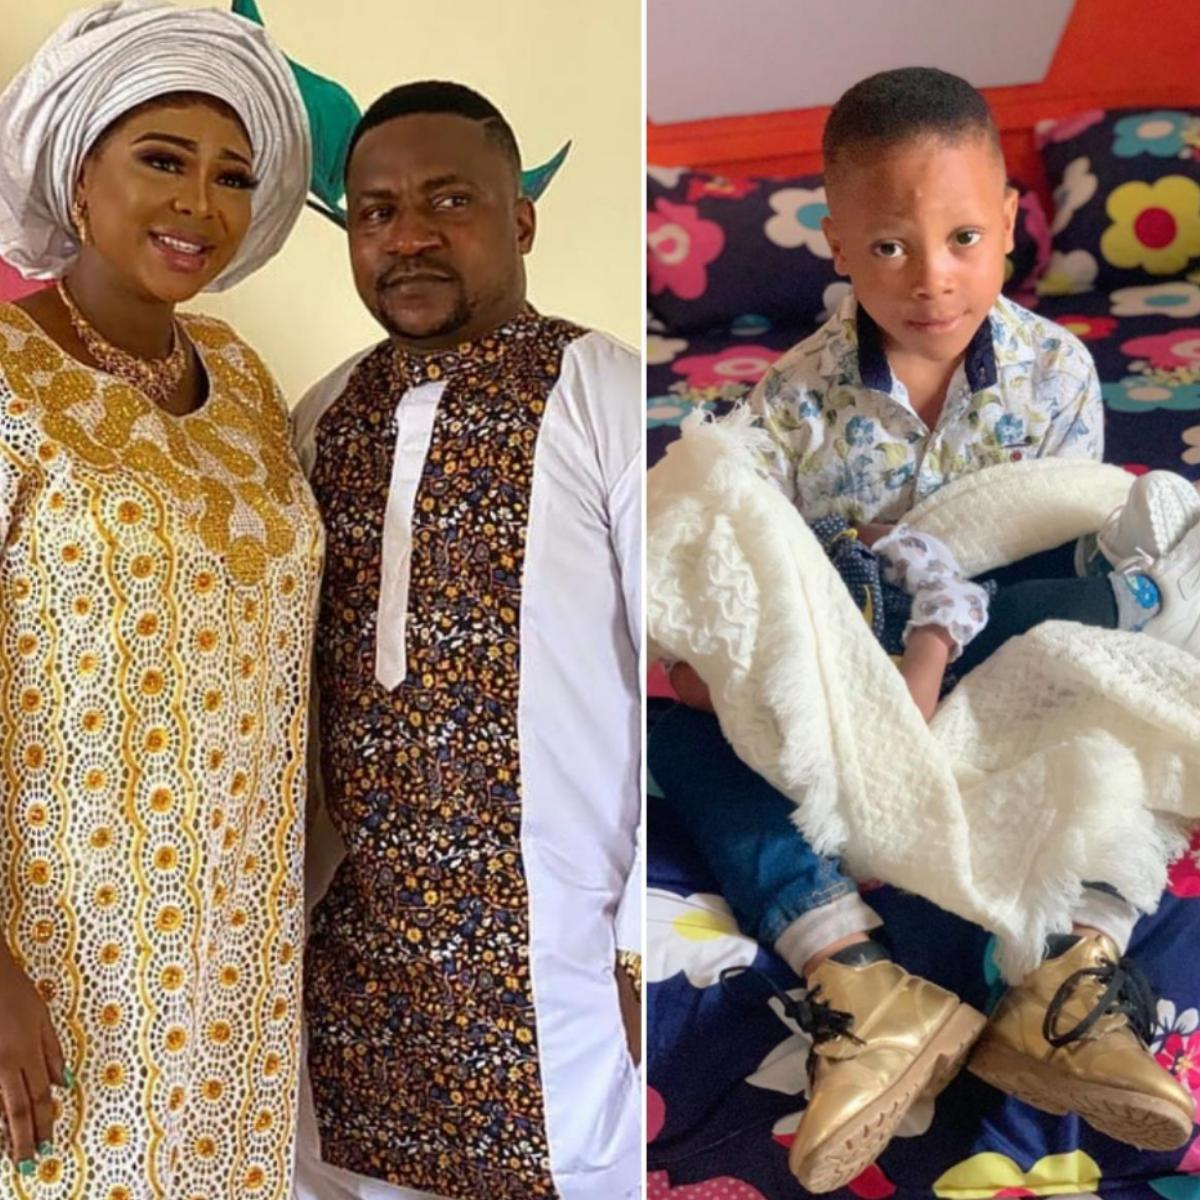 Segun Ogungbe 2nd Wife Son Obadara Cradling Their Newborn